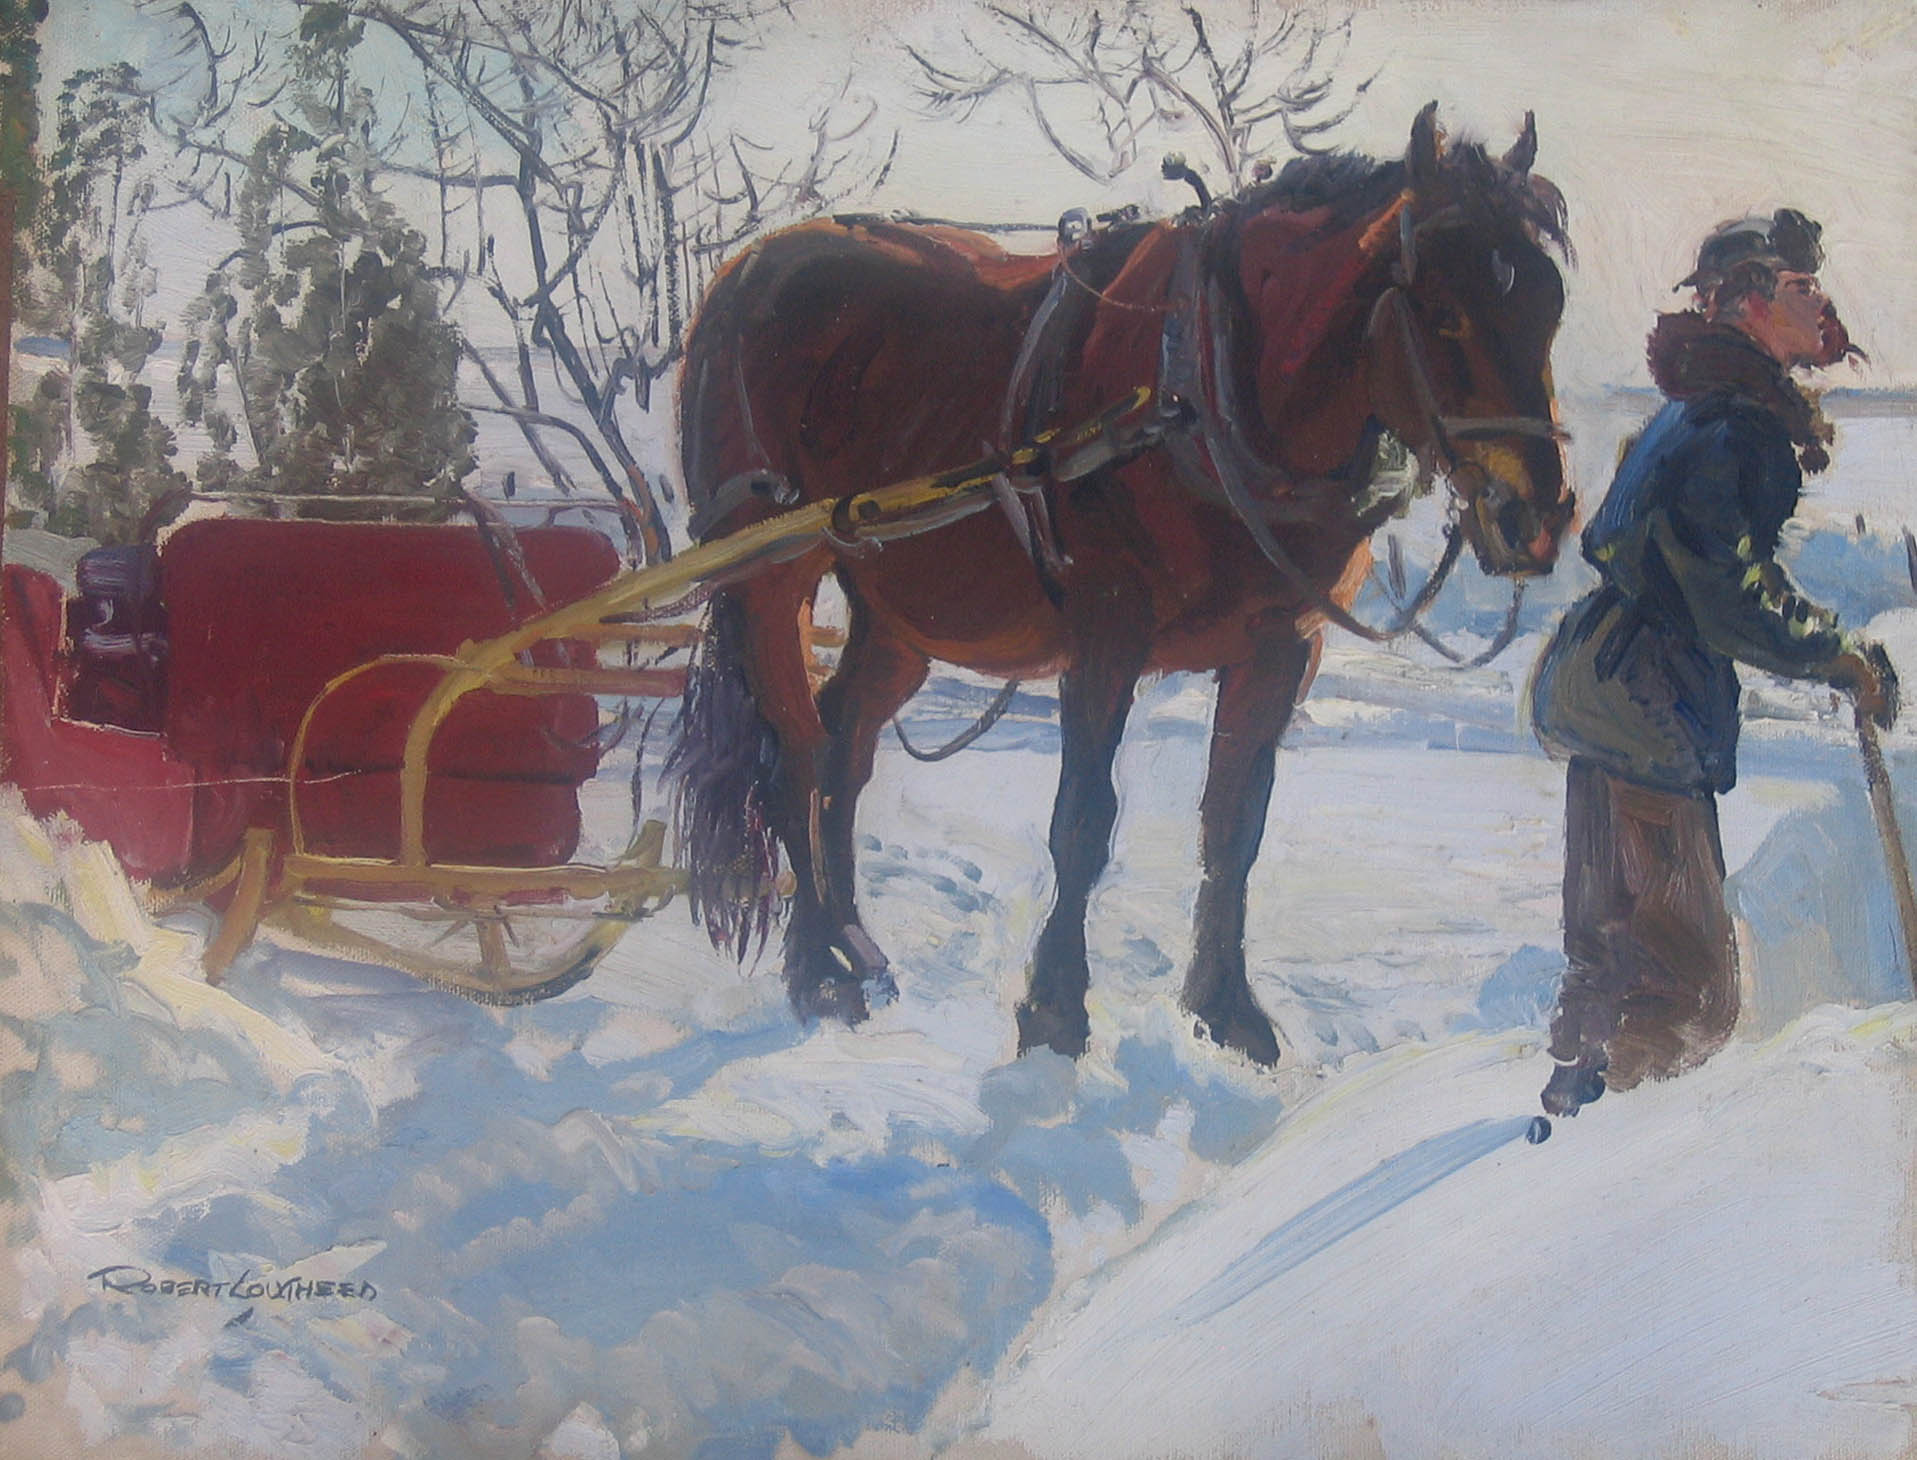 Driver and Red Sleigh by  Robert Lougheed - Masterpiece Online